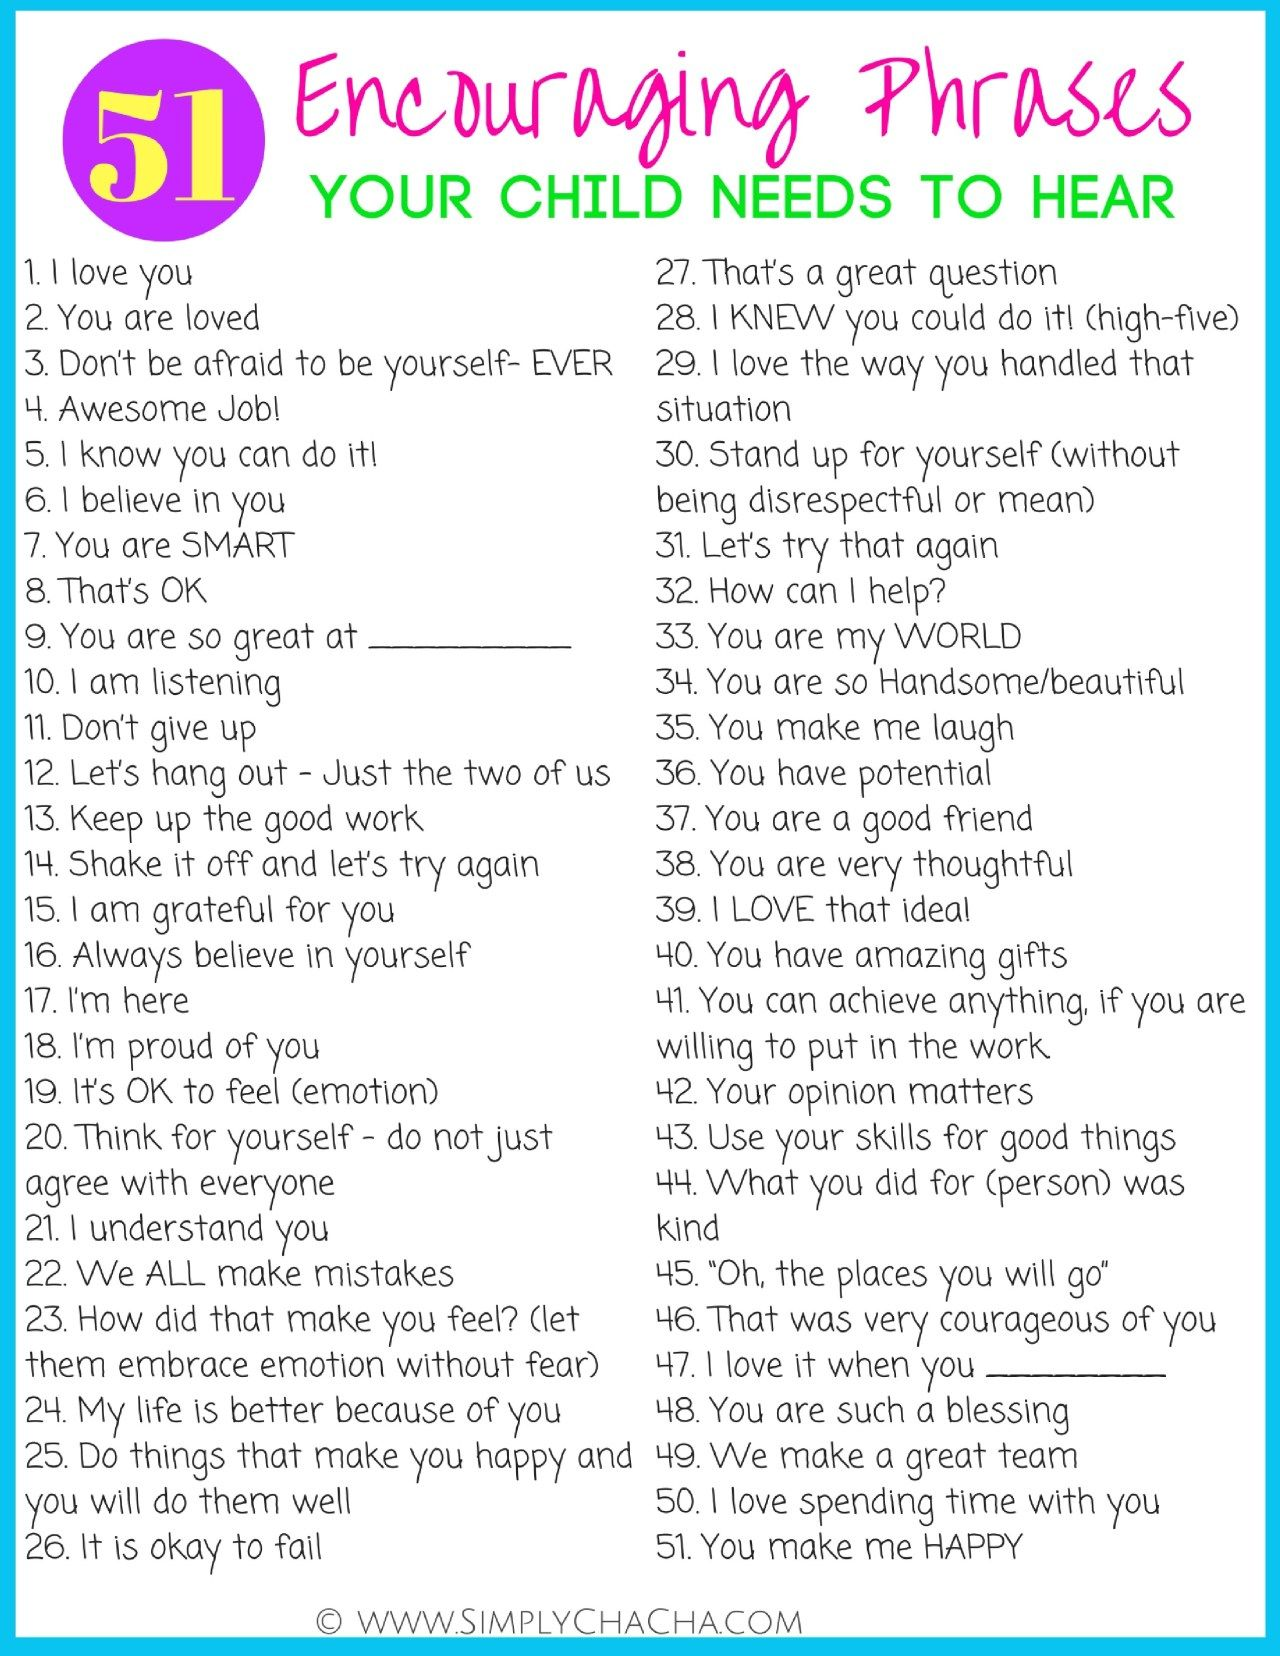 51 Encouraging Phrases Your Child Needs